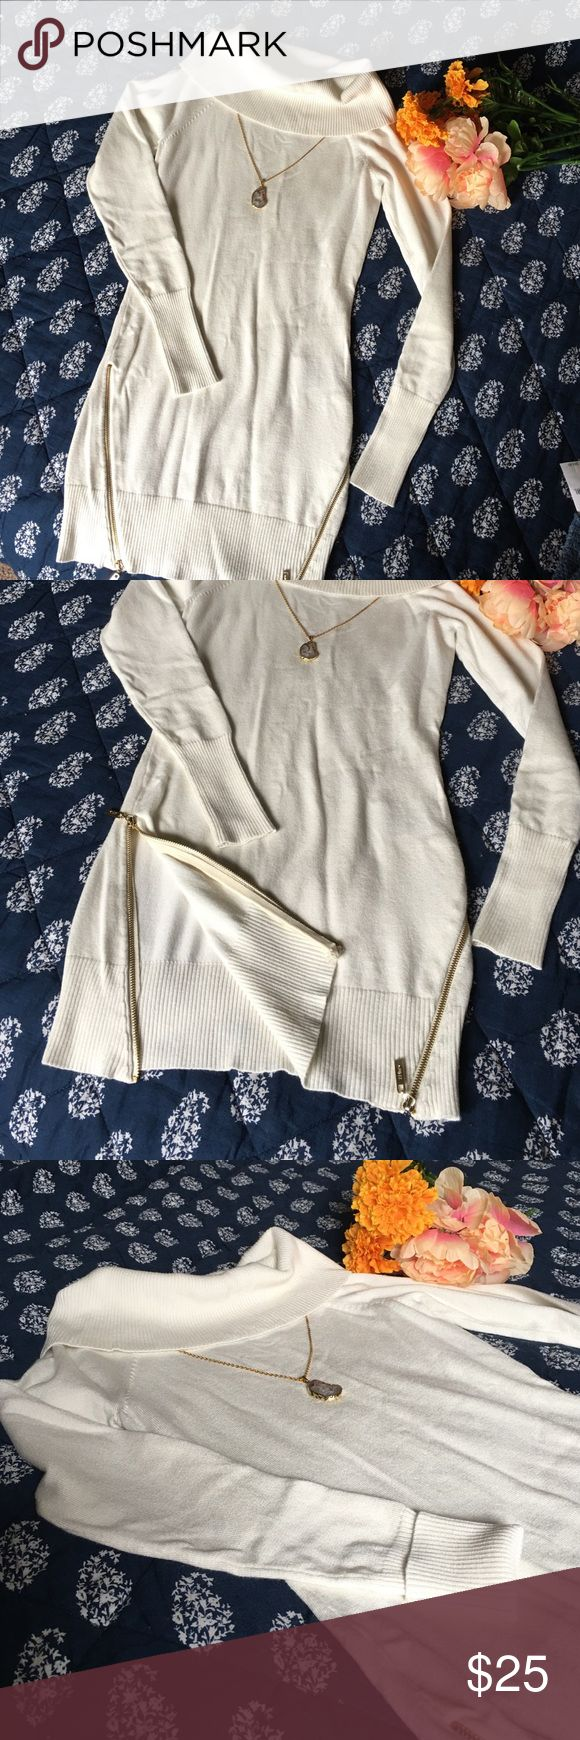 🌻Like New Soft White Guess Sweater Dress🌻 Gorgeous and flawless, this is a snug fitting sweater dress.  Cowl neck can be worn more traditionally, or can be pulled down over shoulders. 72% rayon, 28% nylon.  Light, but warm.  Absolutely wonderful staple piece. :)  Feel free to offer up! :) Guess Dresses Mini